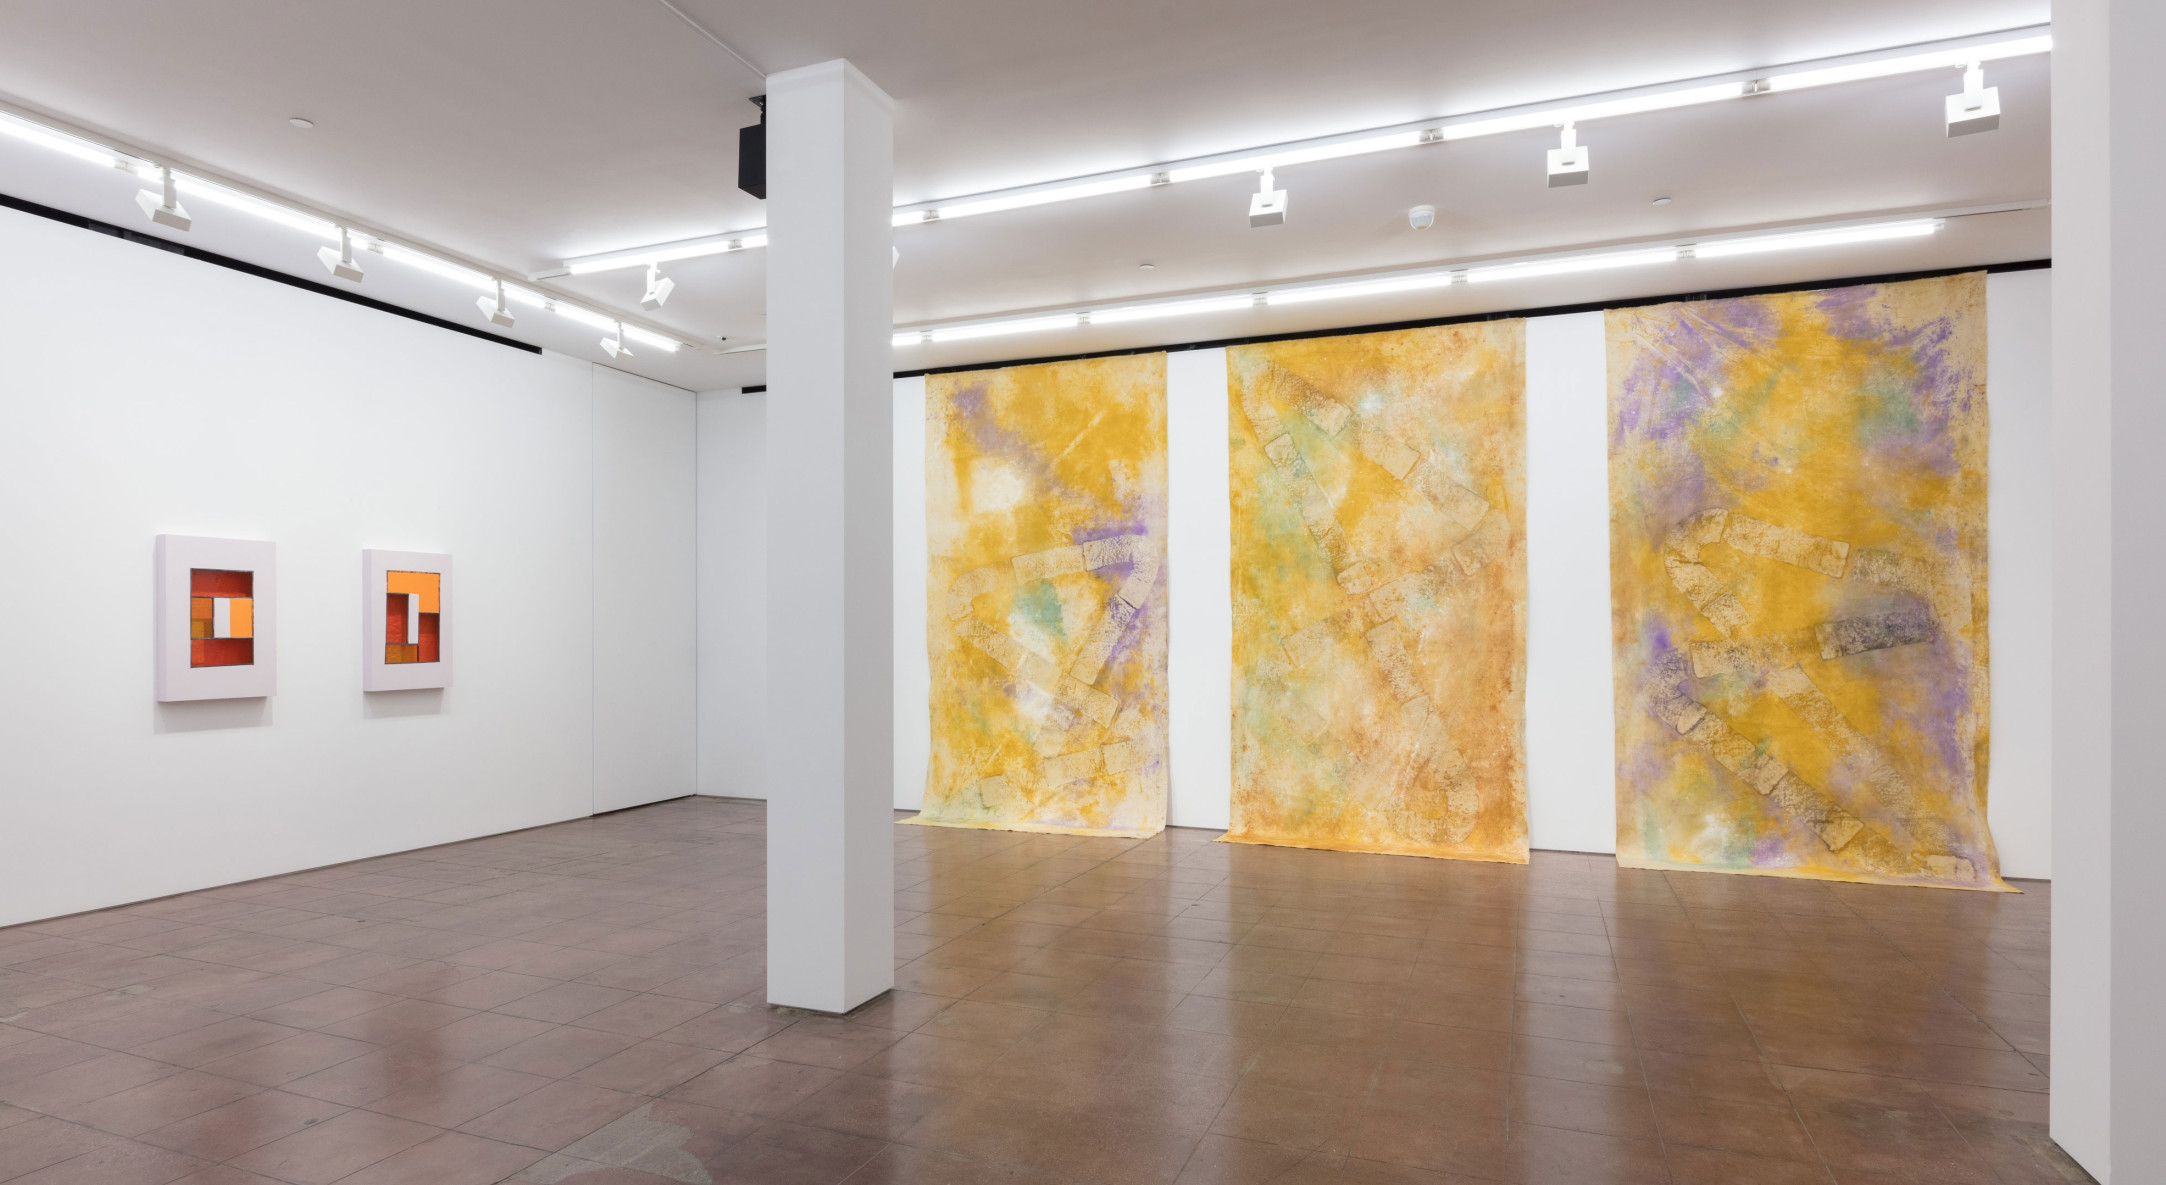 Installation view of Jessica Warboys, Snake Shape Lake, at Hales New York